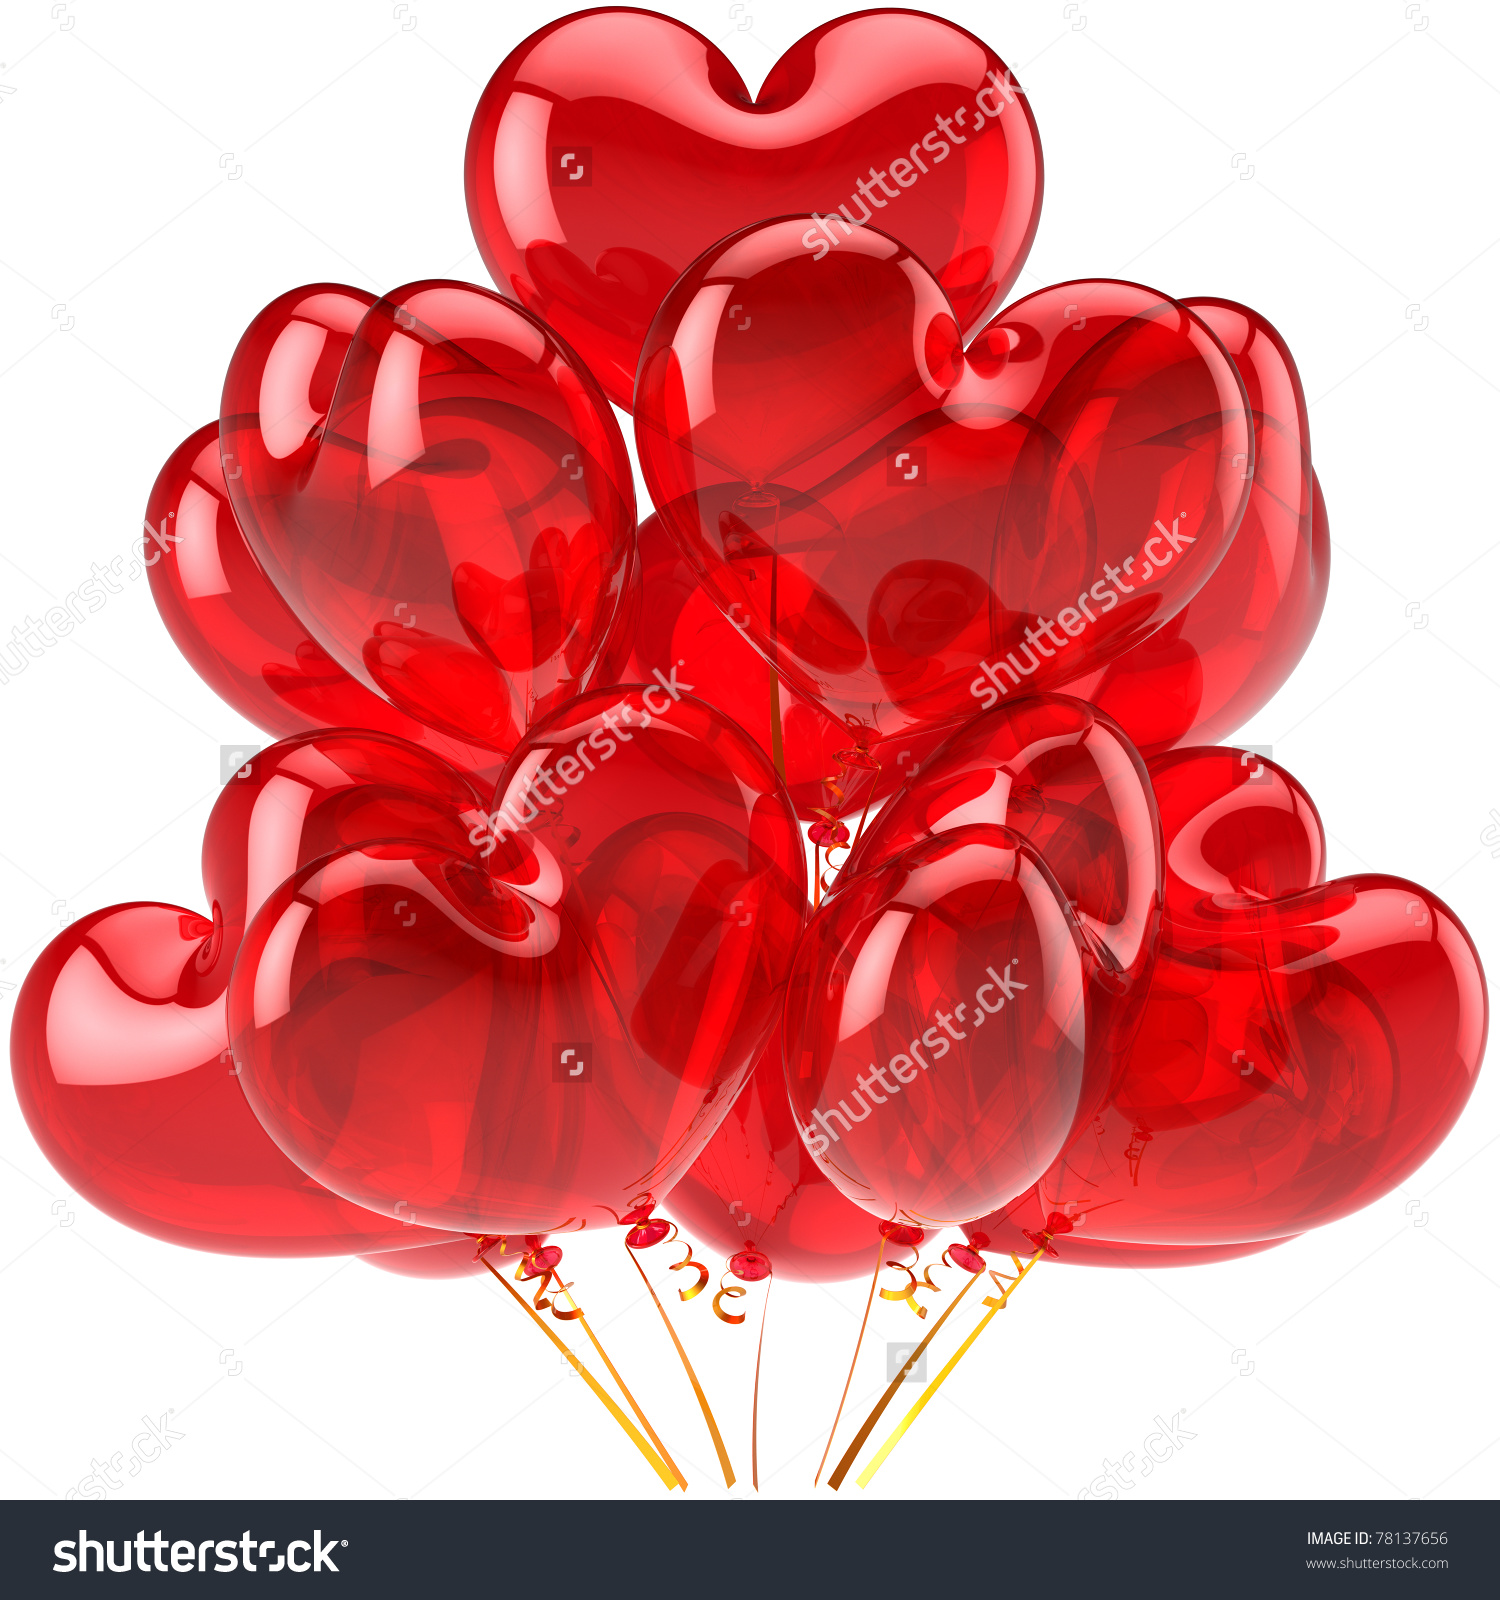 February hearts clip art jpg download Party Balloons Red Hearts Valentines Day Stock Illustration ... jpg download